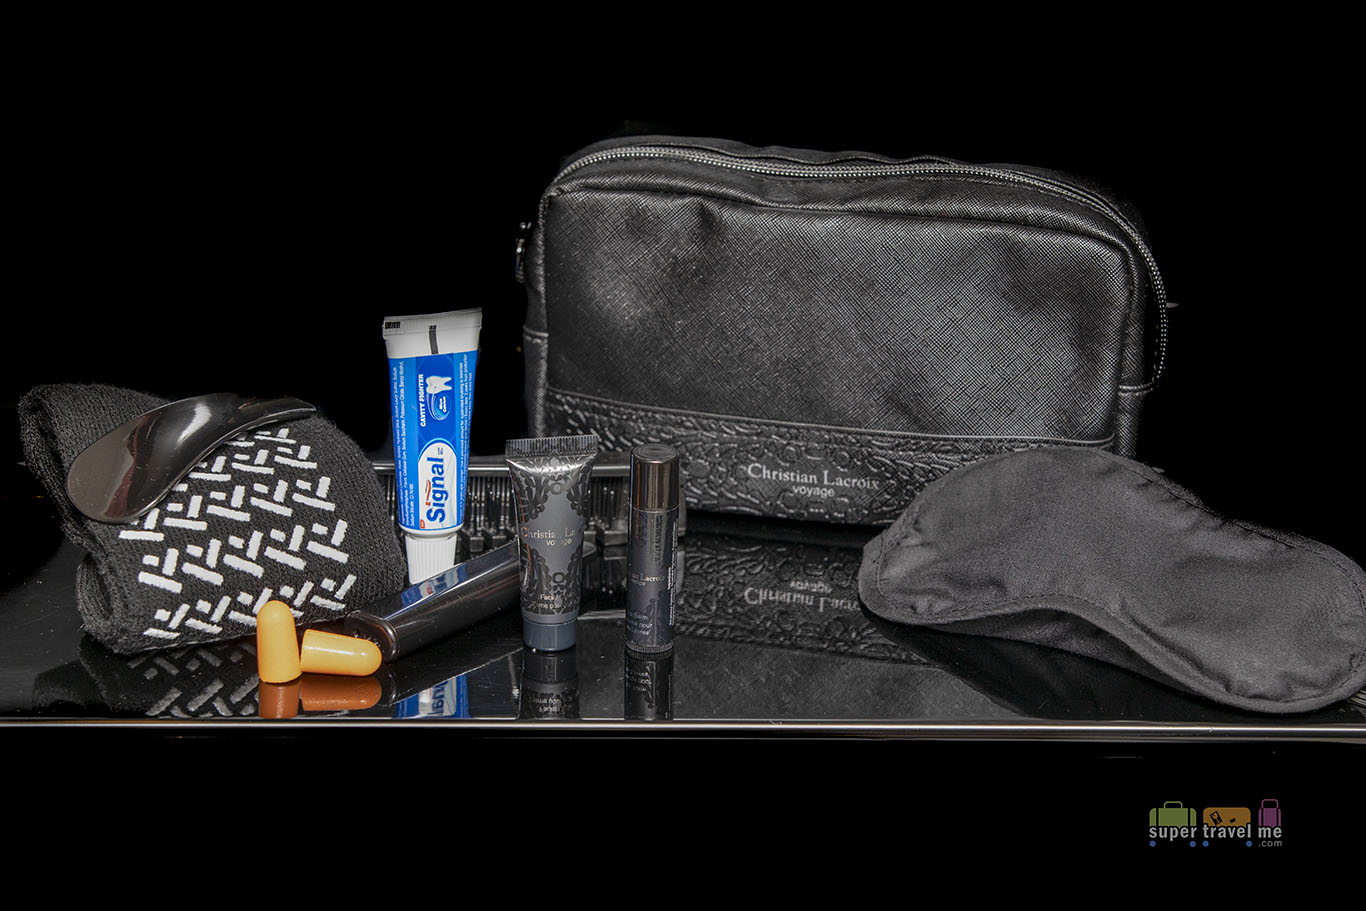 Turkish Airlines Christian Lacroix Voyage amenity kit contents